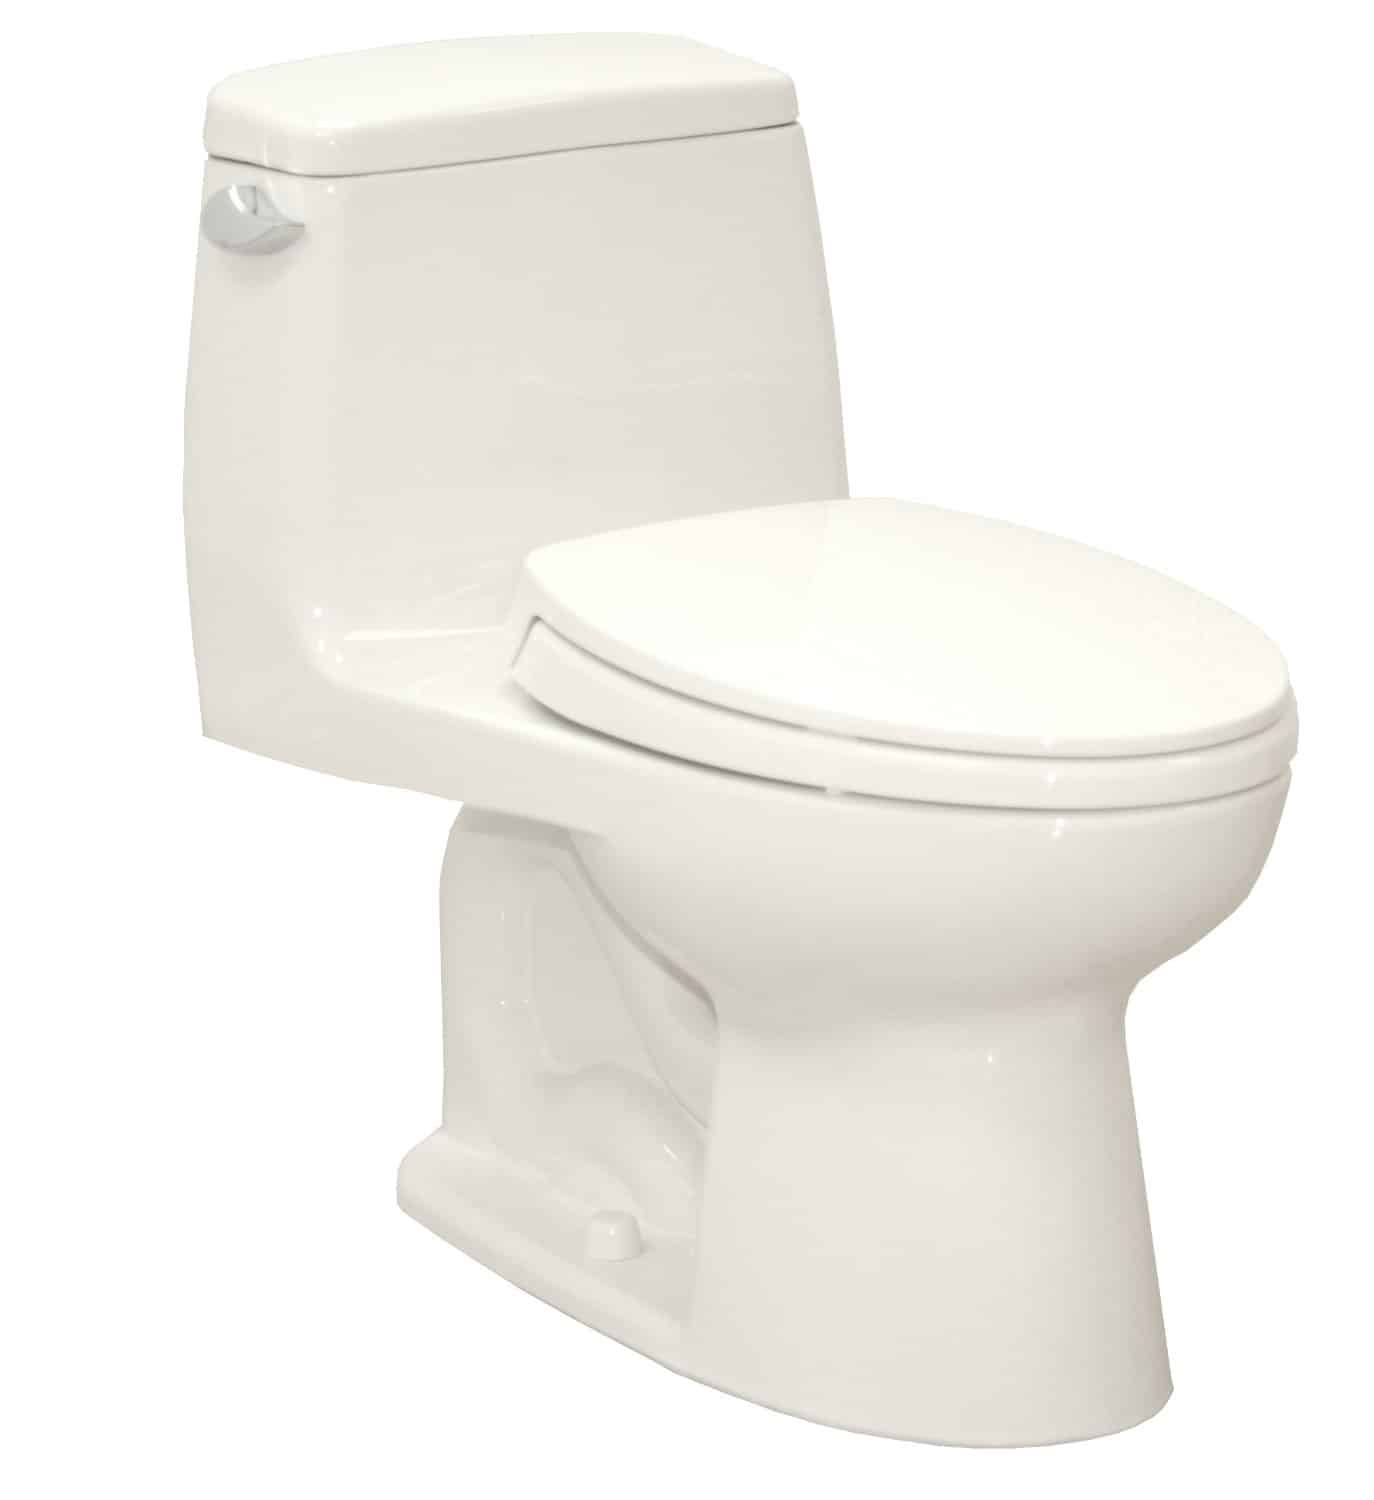 Best toilet on the market reviews - Toto Ms854114s 01 Ultramax Elongated One Piece Toilet Review